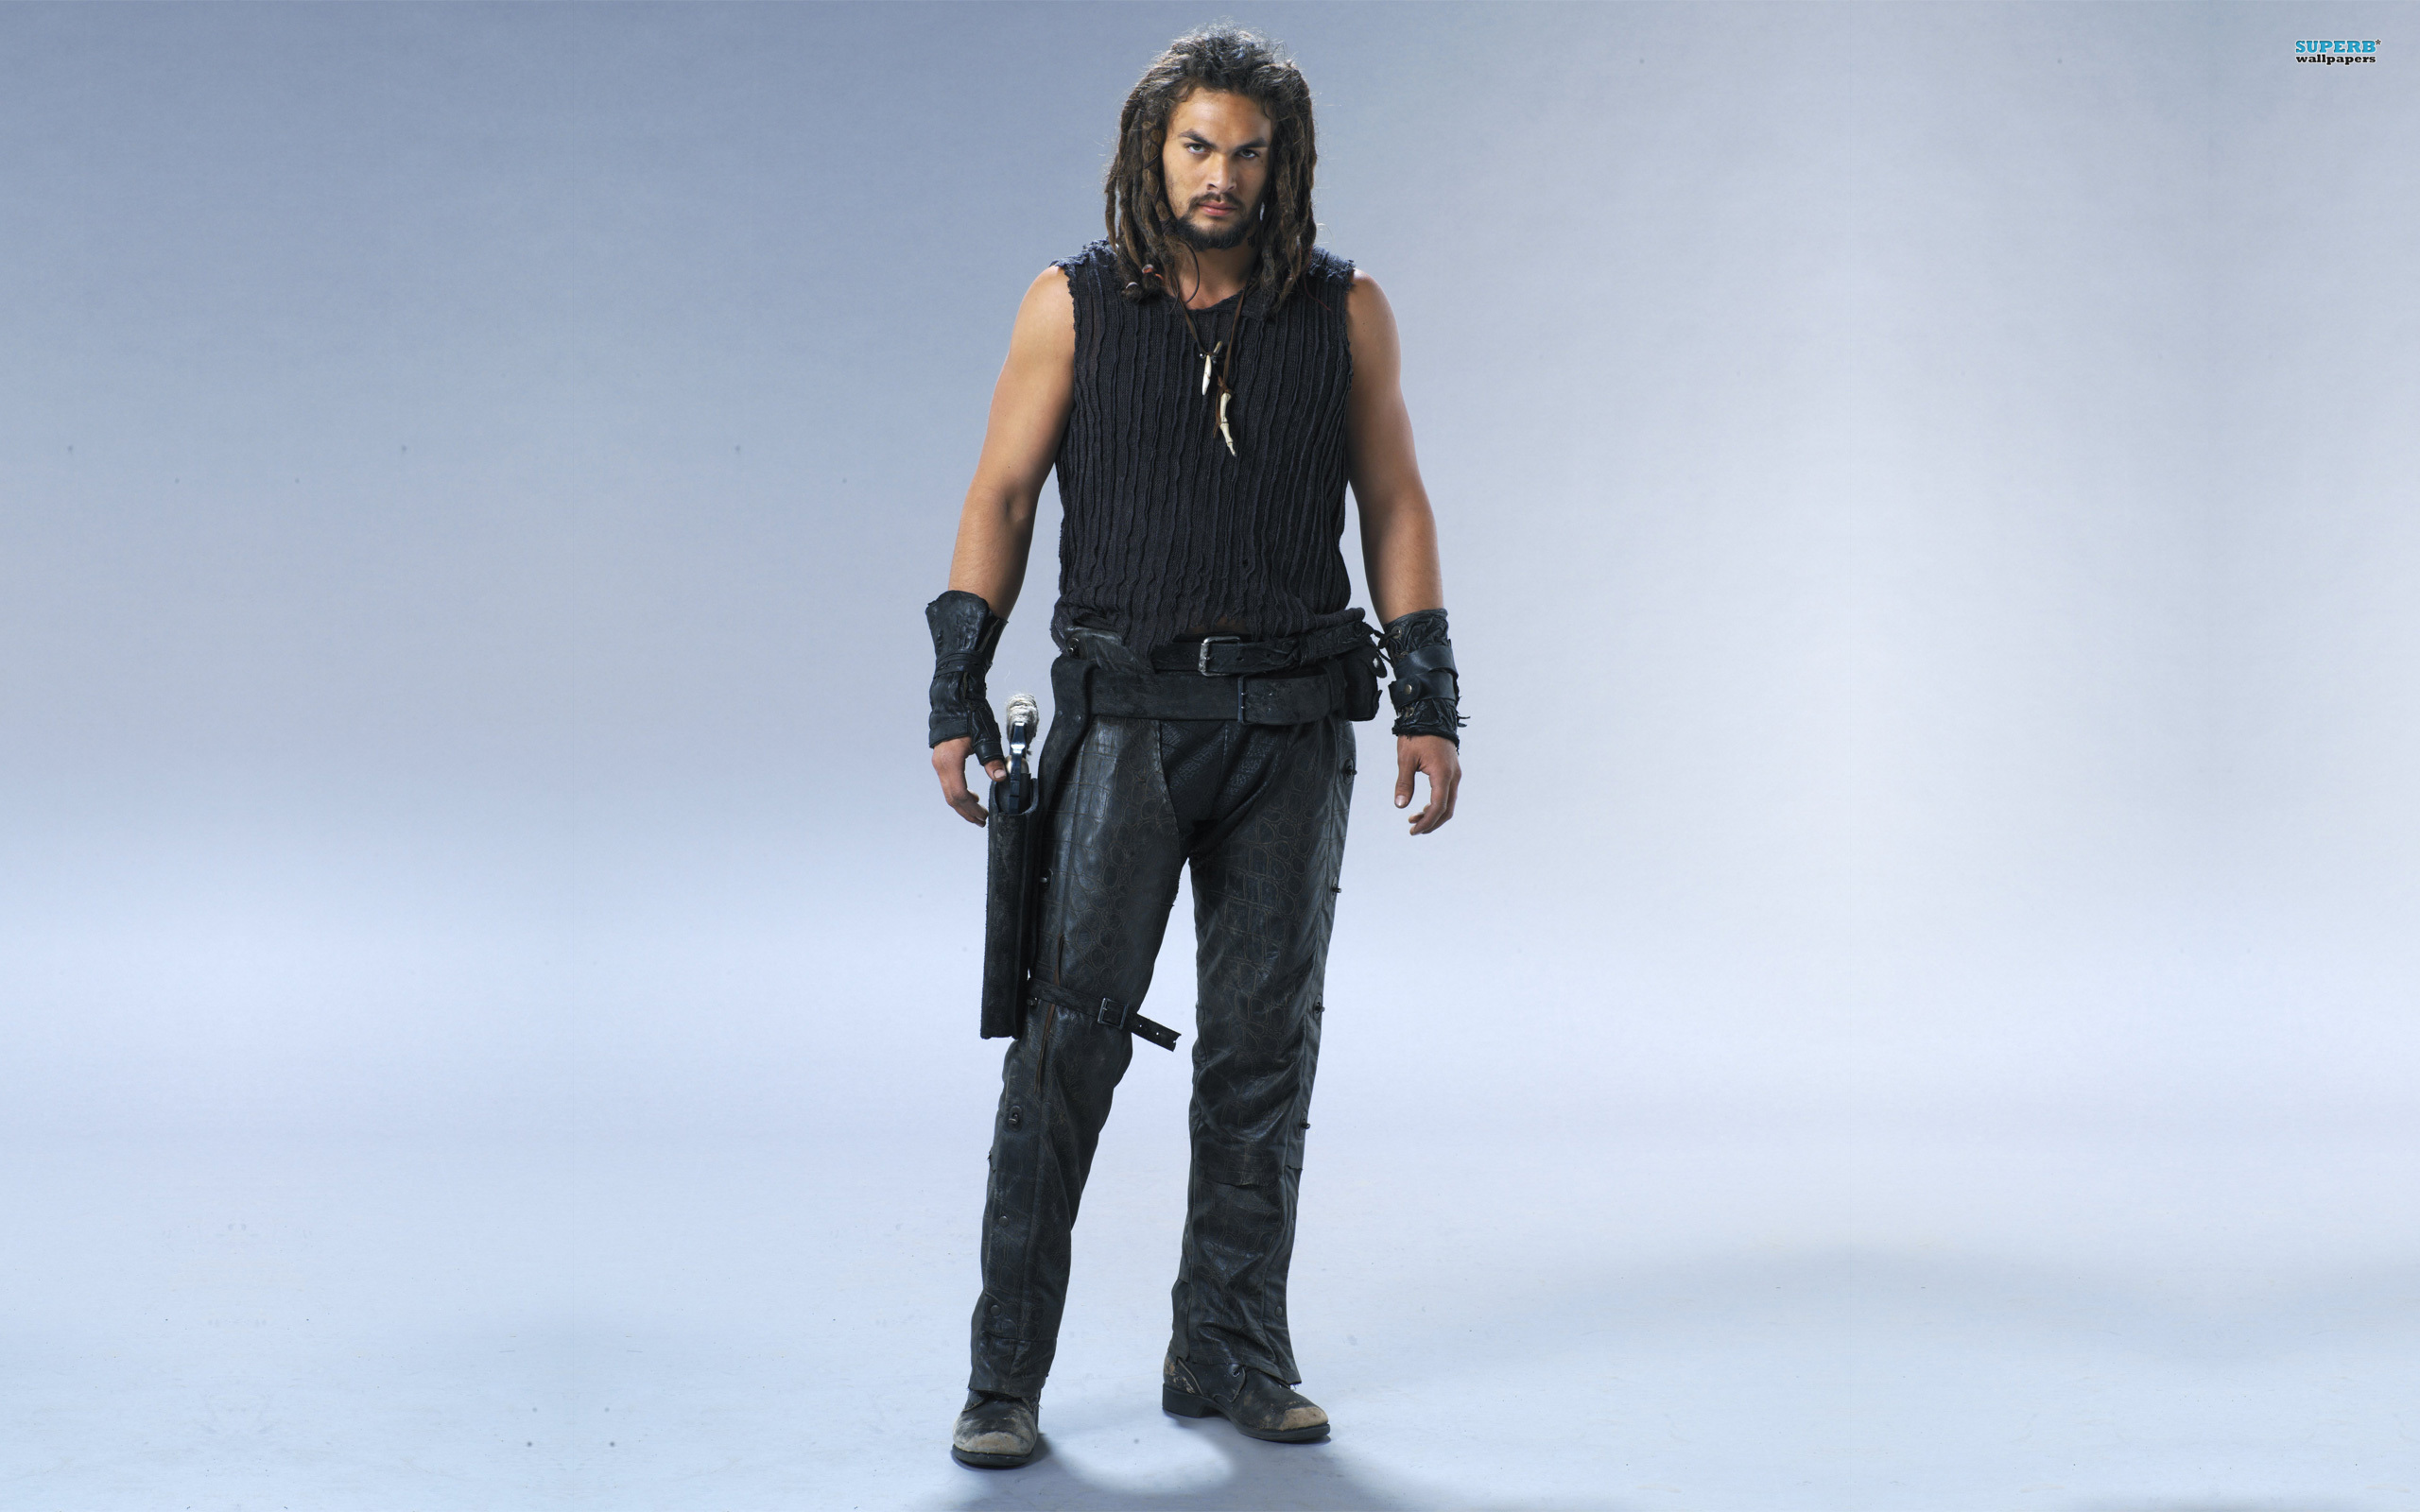 Jason Momoa Wallpapers High Resolution and Quality Download 2560x1600